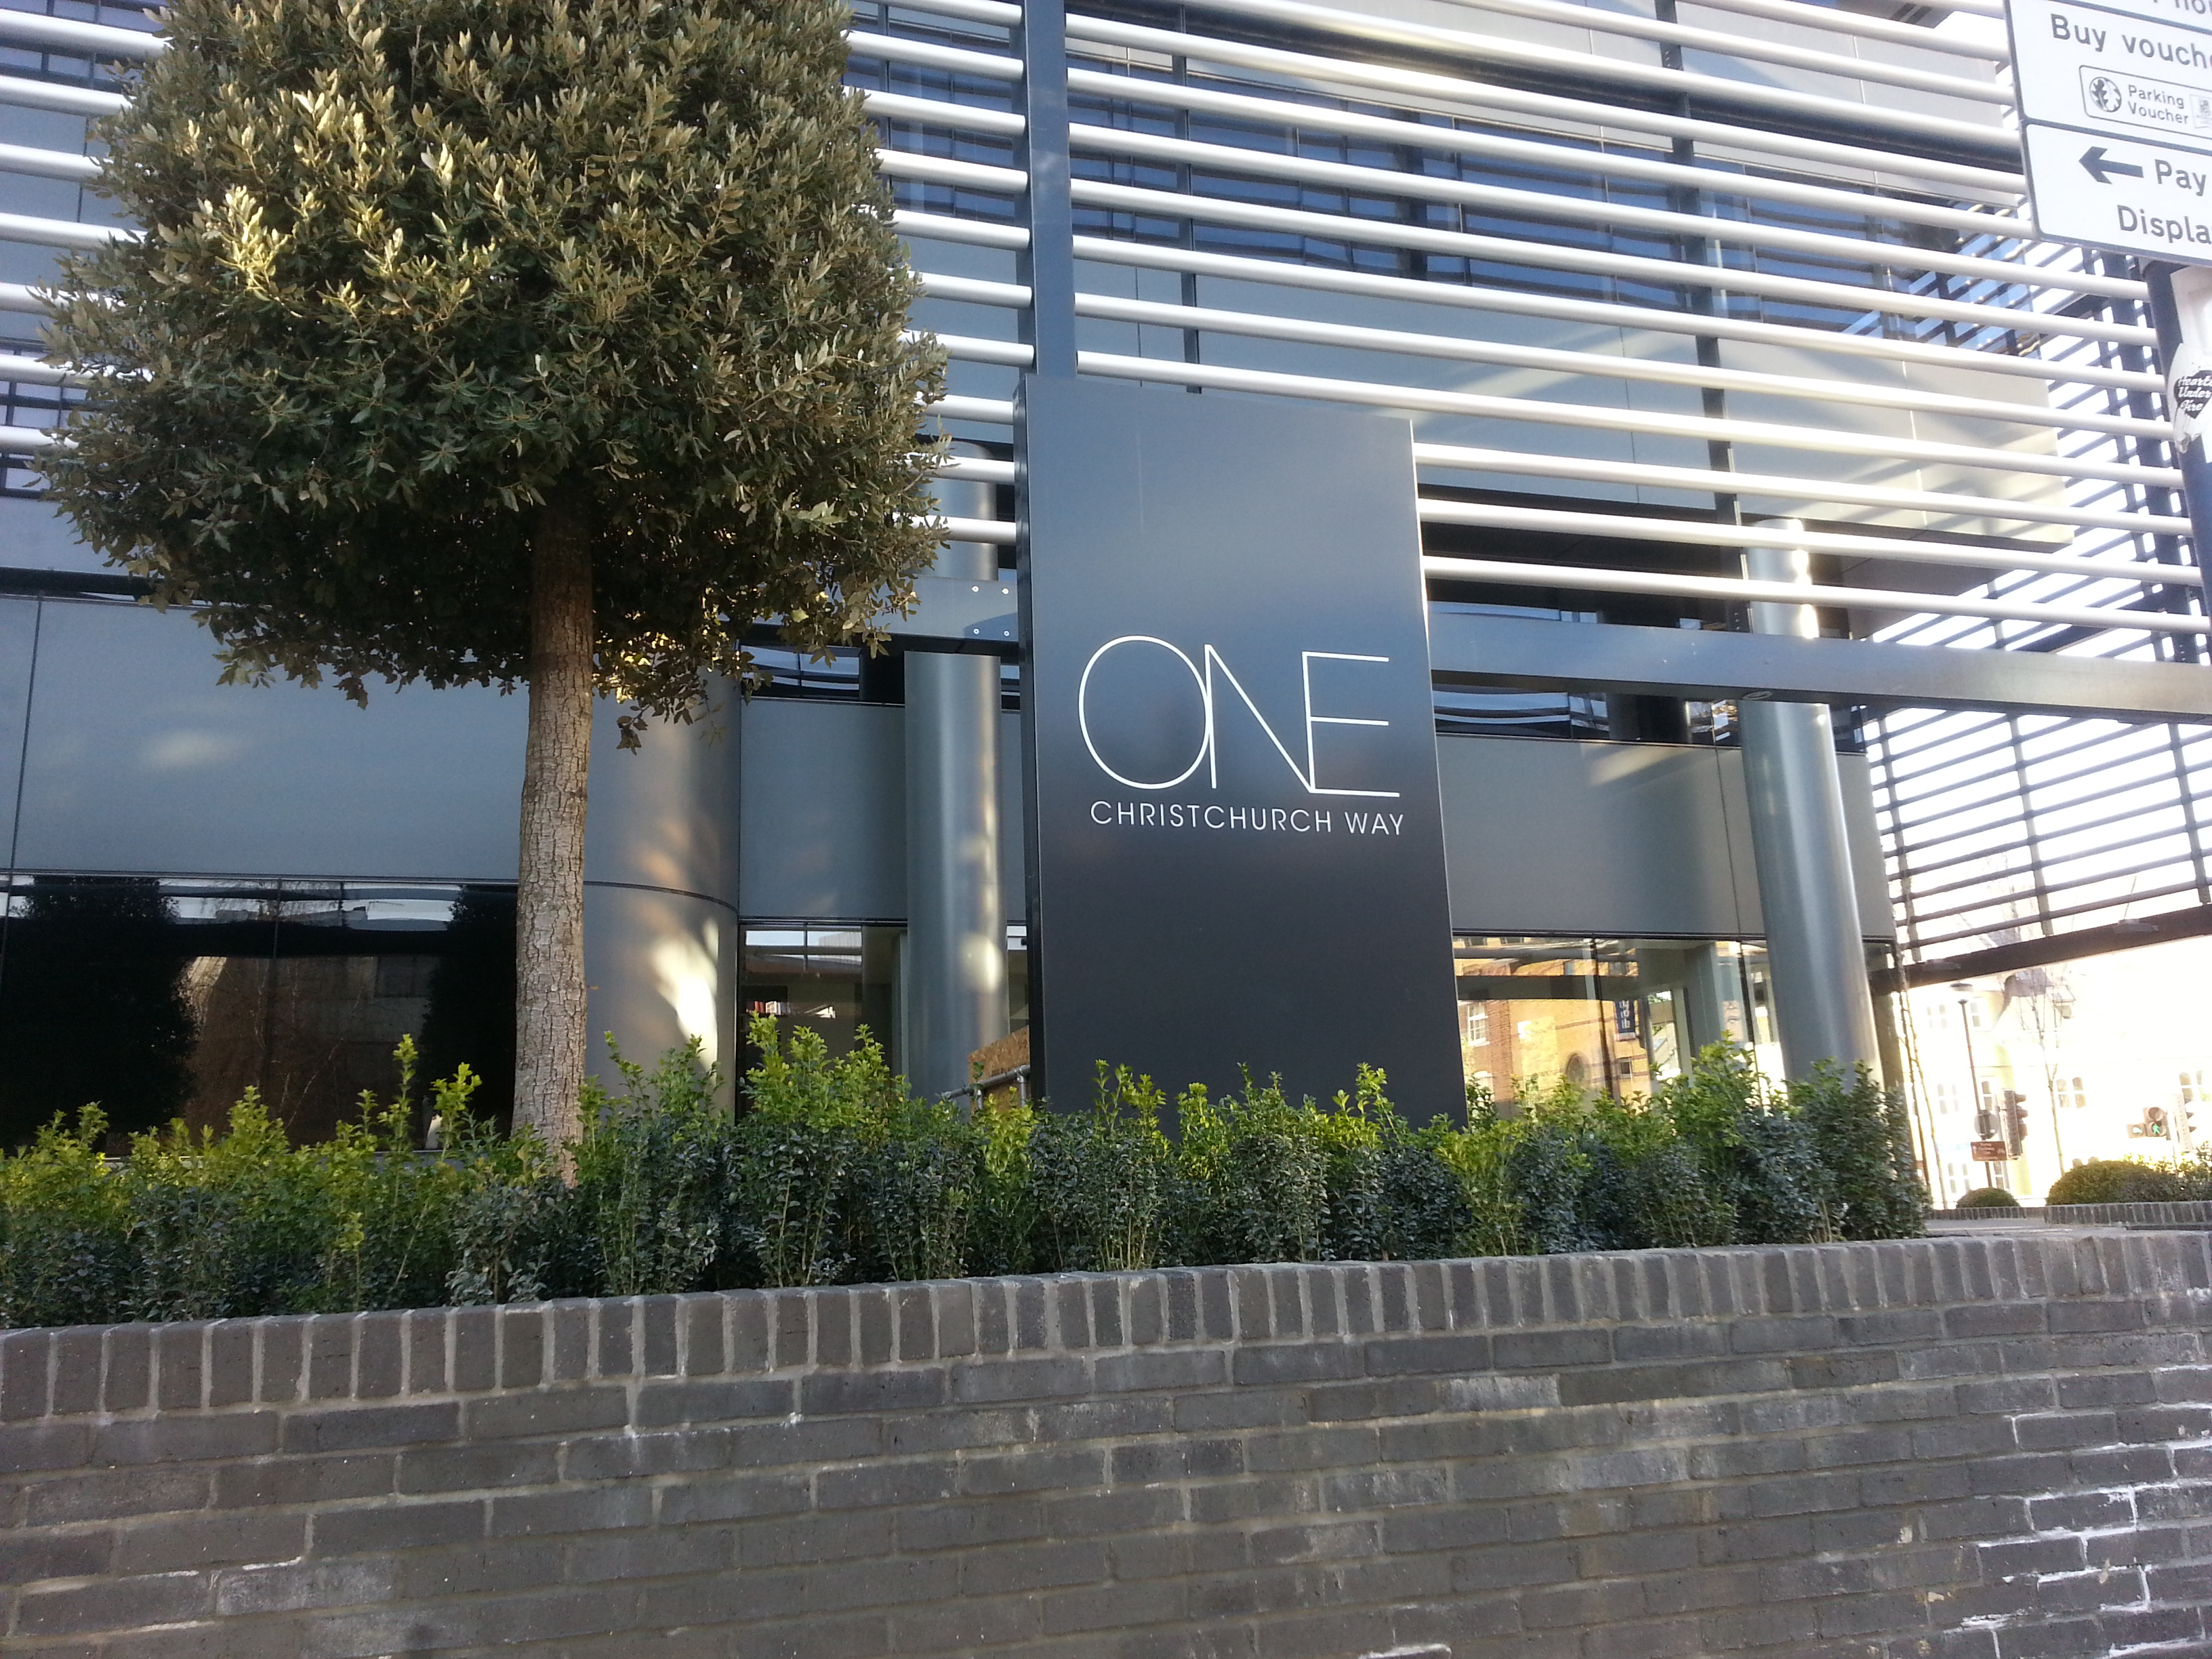 Office entrance sign - Woking